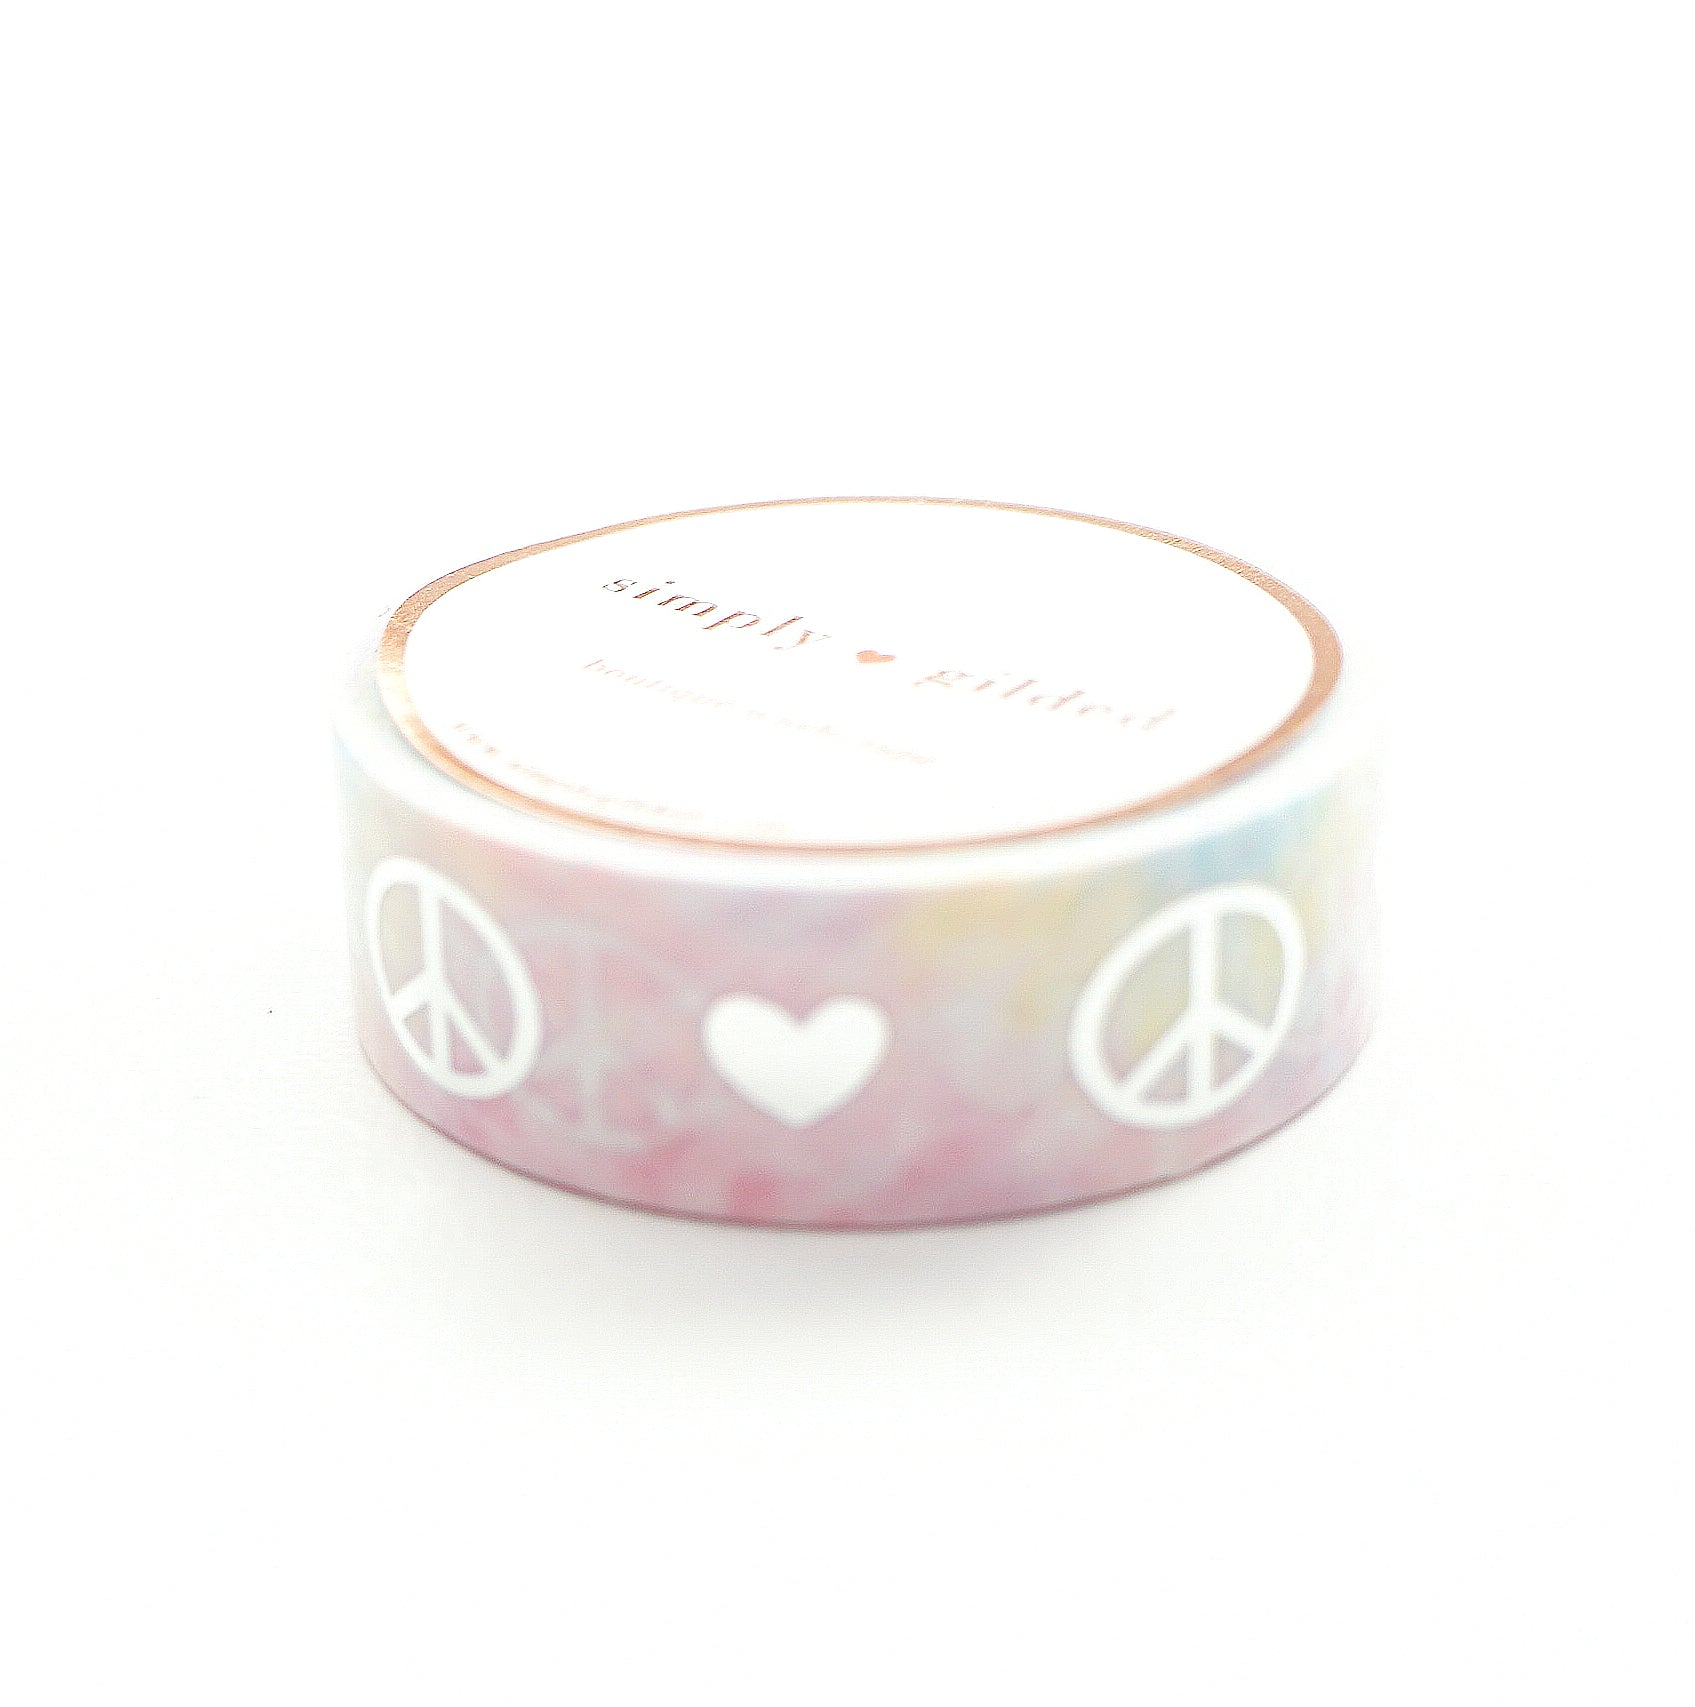 WASHI TAPE 15mm - PEACE LOVE tie-dye + silver foil (June 22nd Release)